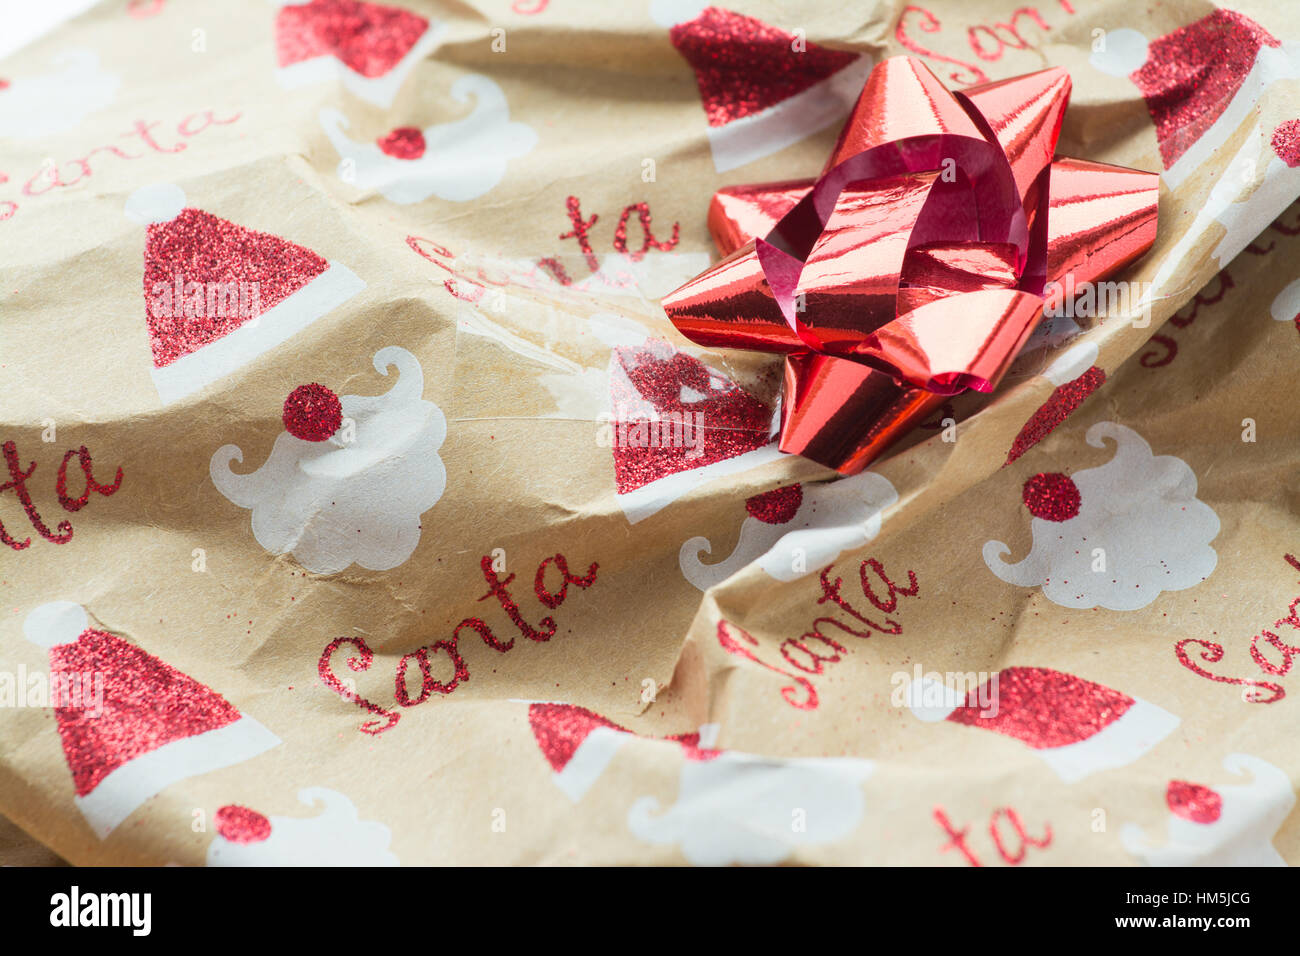 unrecyclable christmas wrapping paper with glitter and sellotape - Stock Image